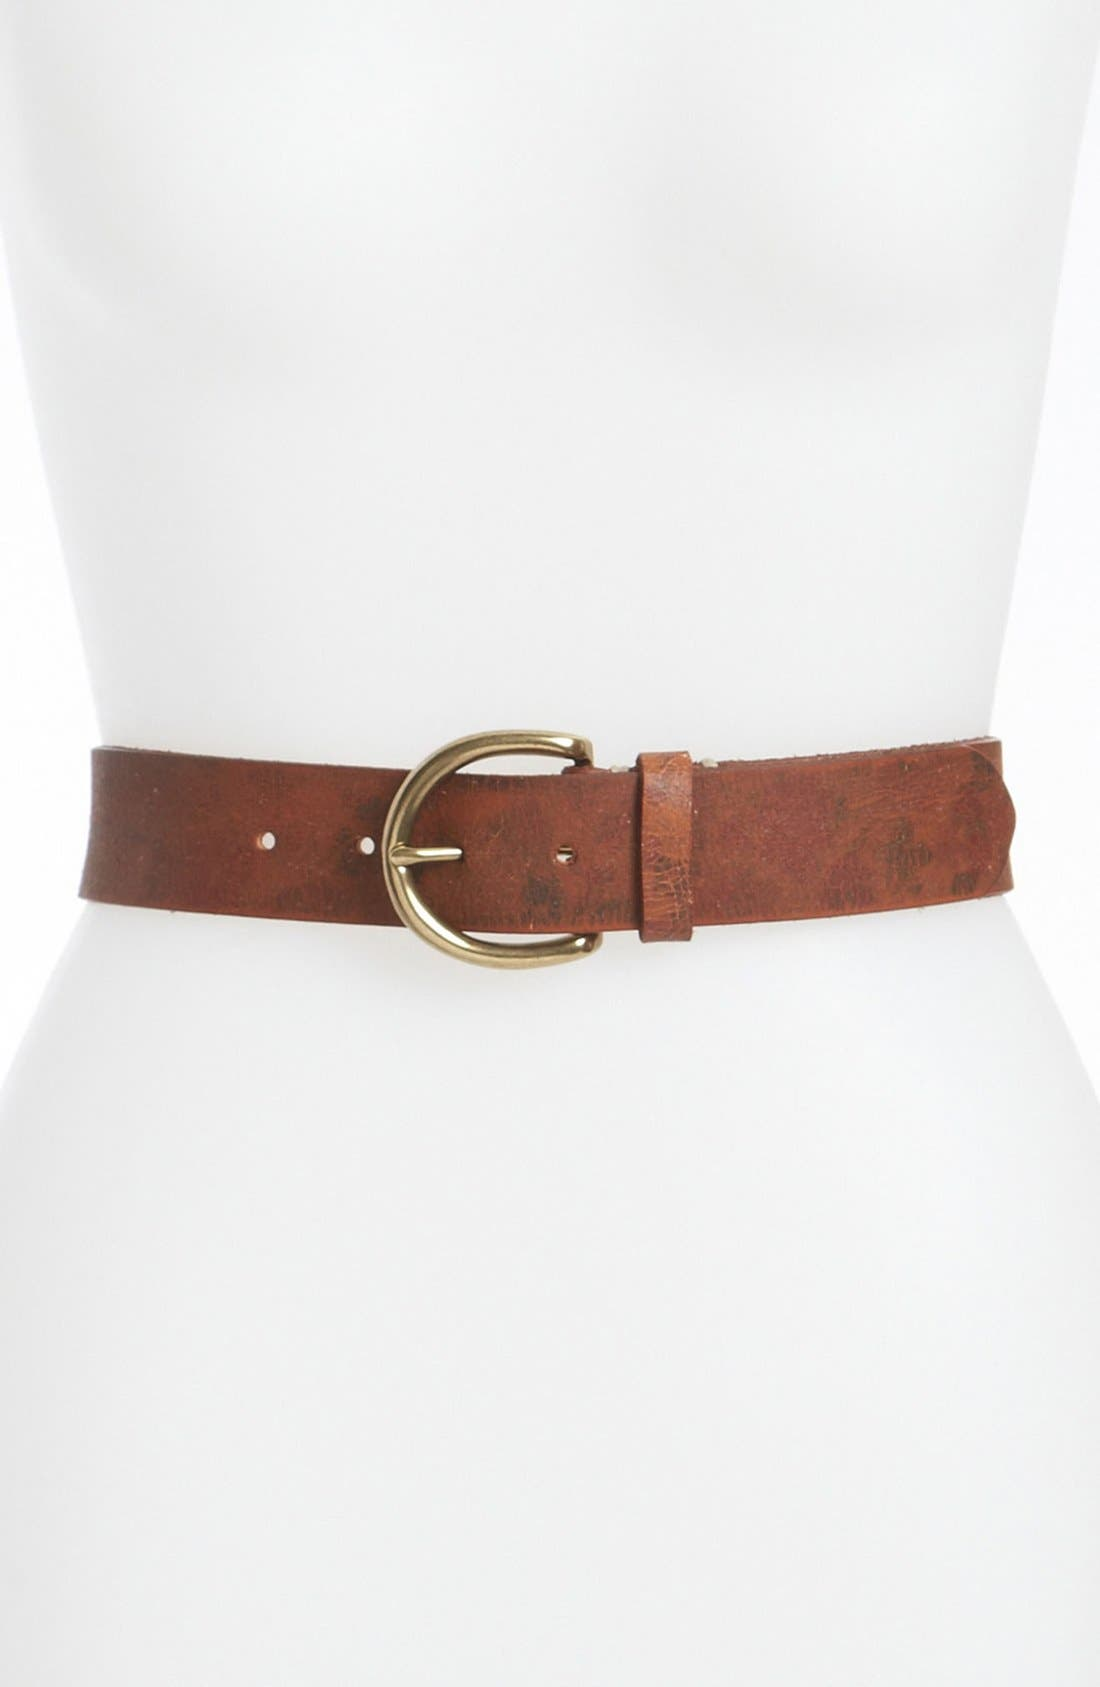 Alternate Image 1 Selected - Fina Firenze Belts 'Floral Foiled Denim' Leather Belt